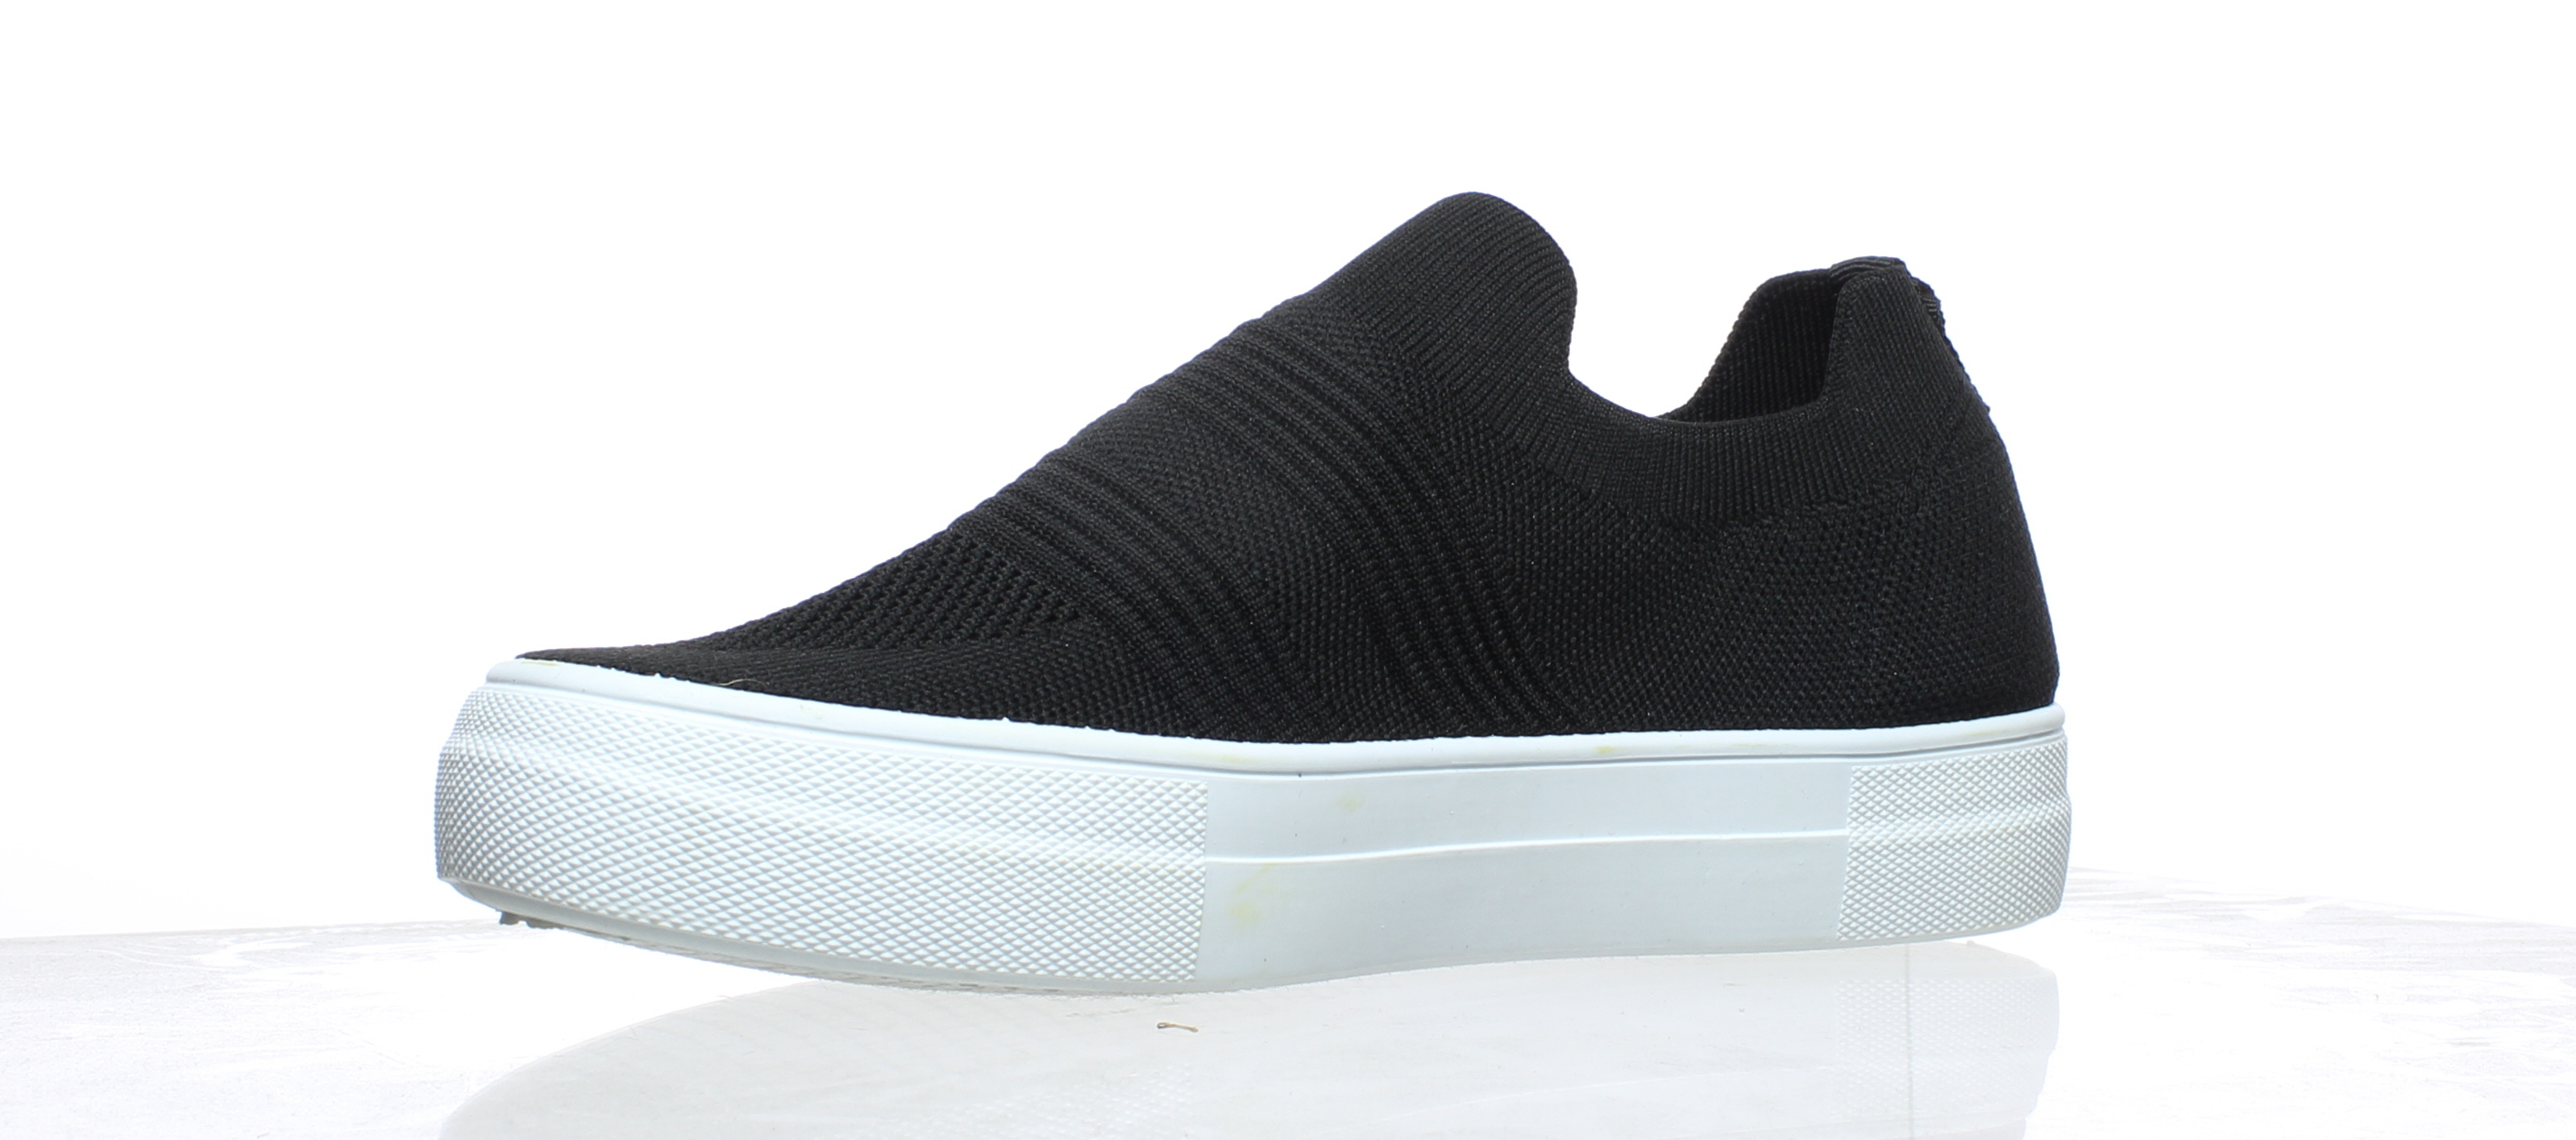 9e7f0332850d9 Details about Madden Girl Womens Bravee Black Fashion Sneaker Size 8  (354770)